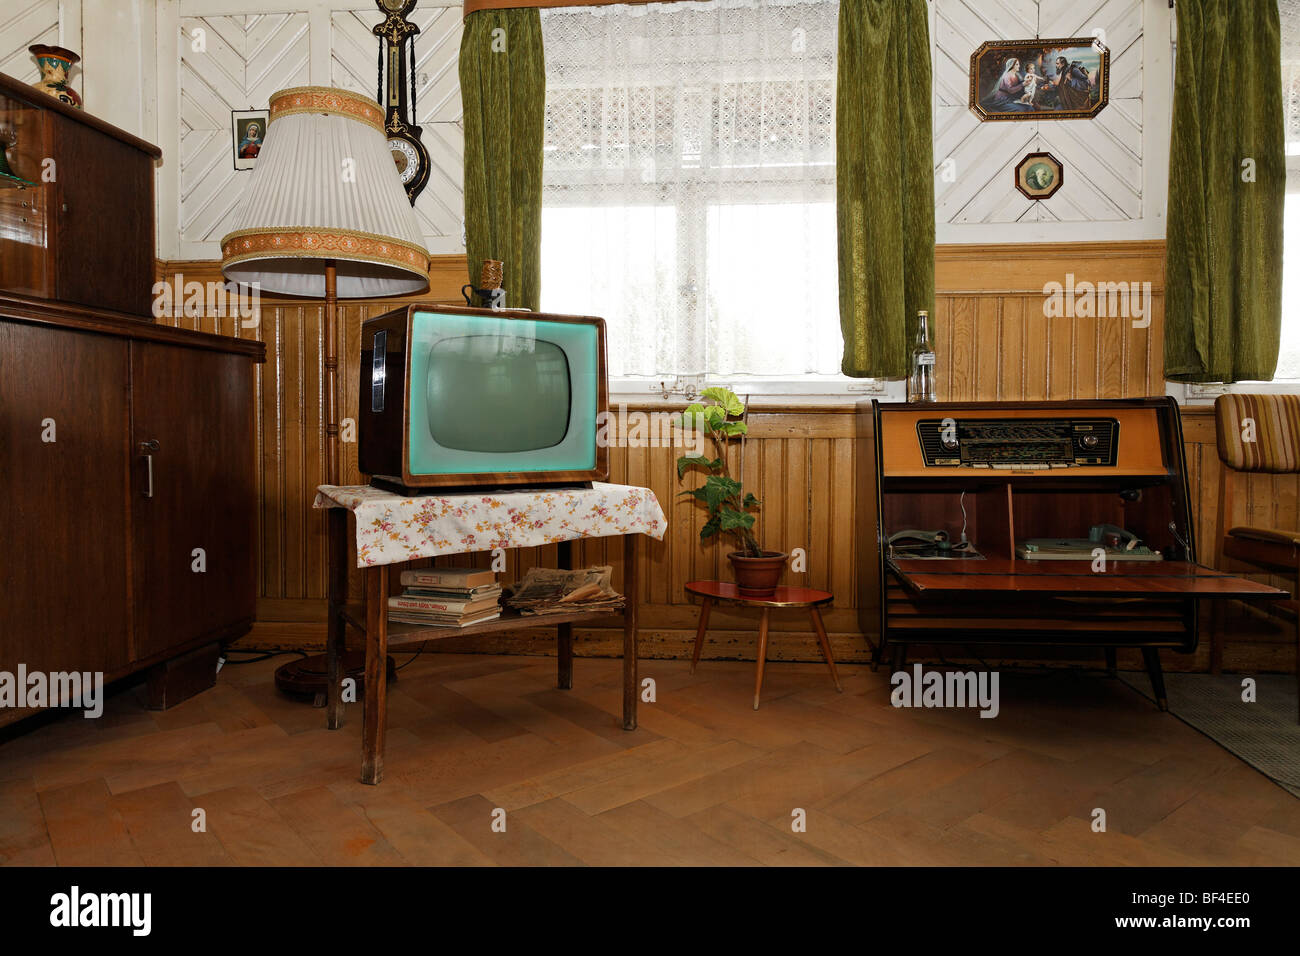 Wohnzimmer Mit Originalen Mobeln Aus Den Jahren Alte Schwarz Weiss Tv Musikschrank Haus Haeusing Wolfegg Farmhous Restore Living Vintage Furniture Shop